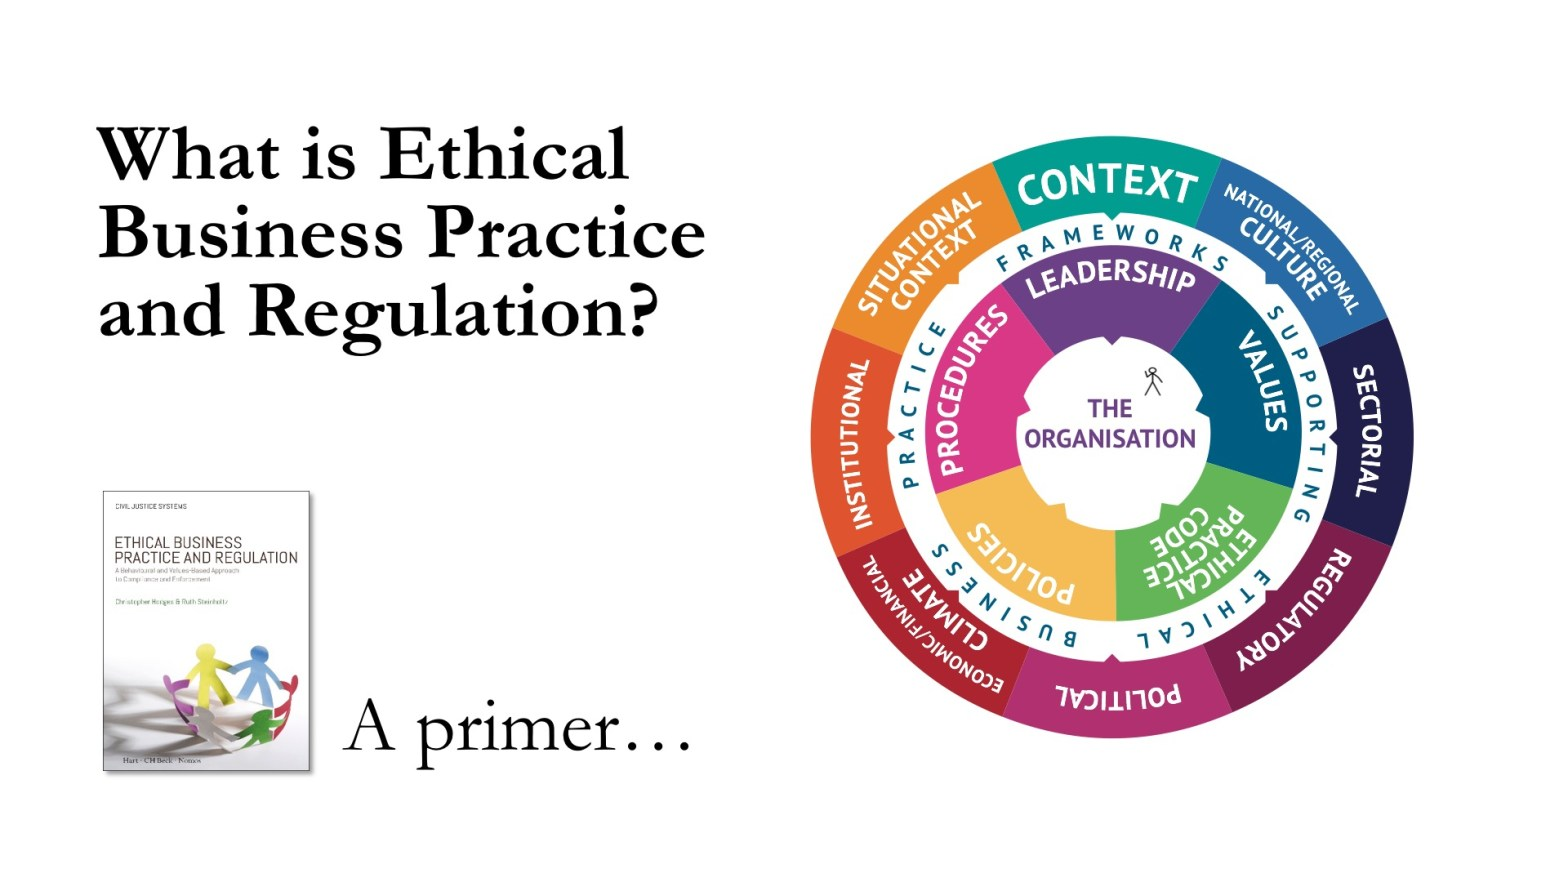 What is #EthicalBusinessPractice - a primer Excerpt from Ethical Business Practice & Regulation – by Christopher Hodges, Ruth Steinholtz